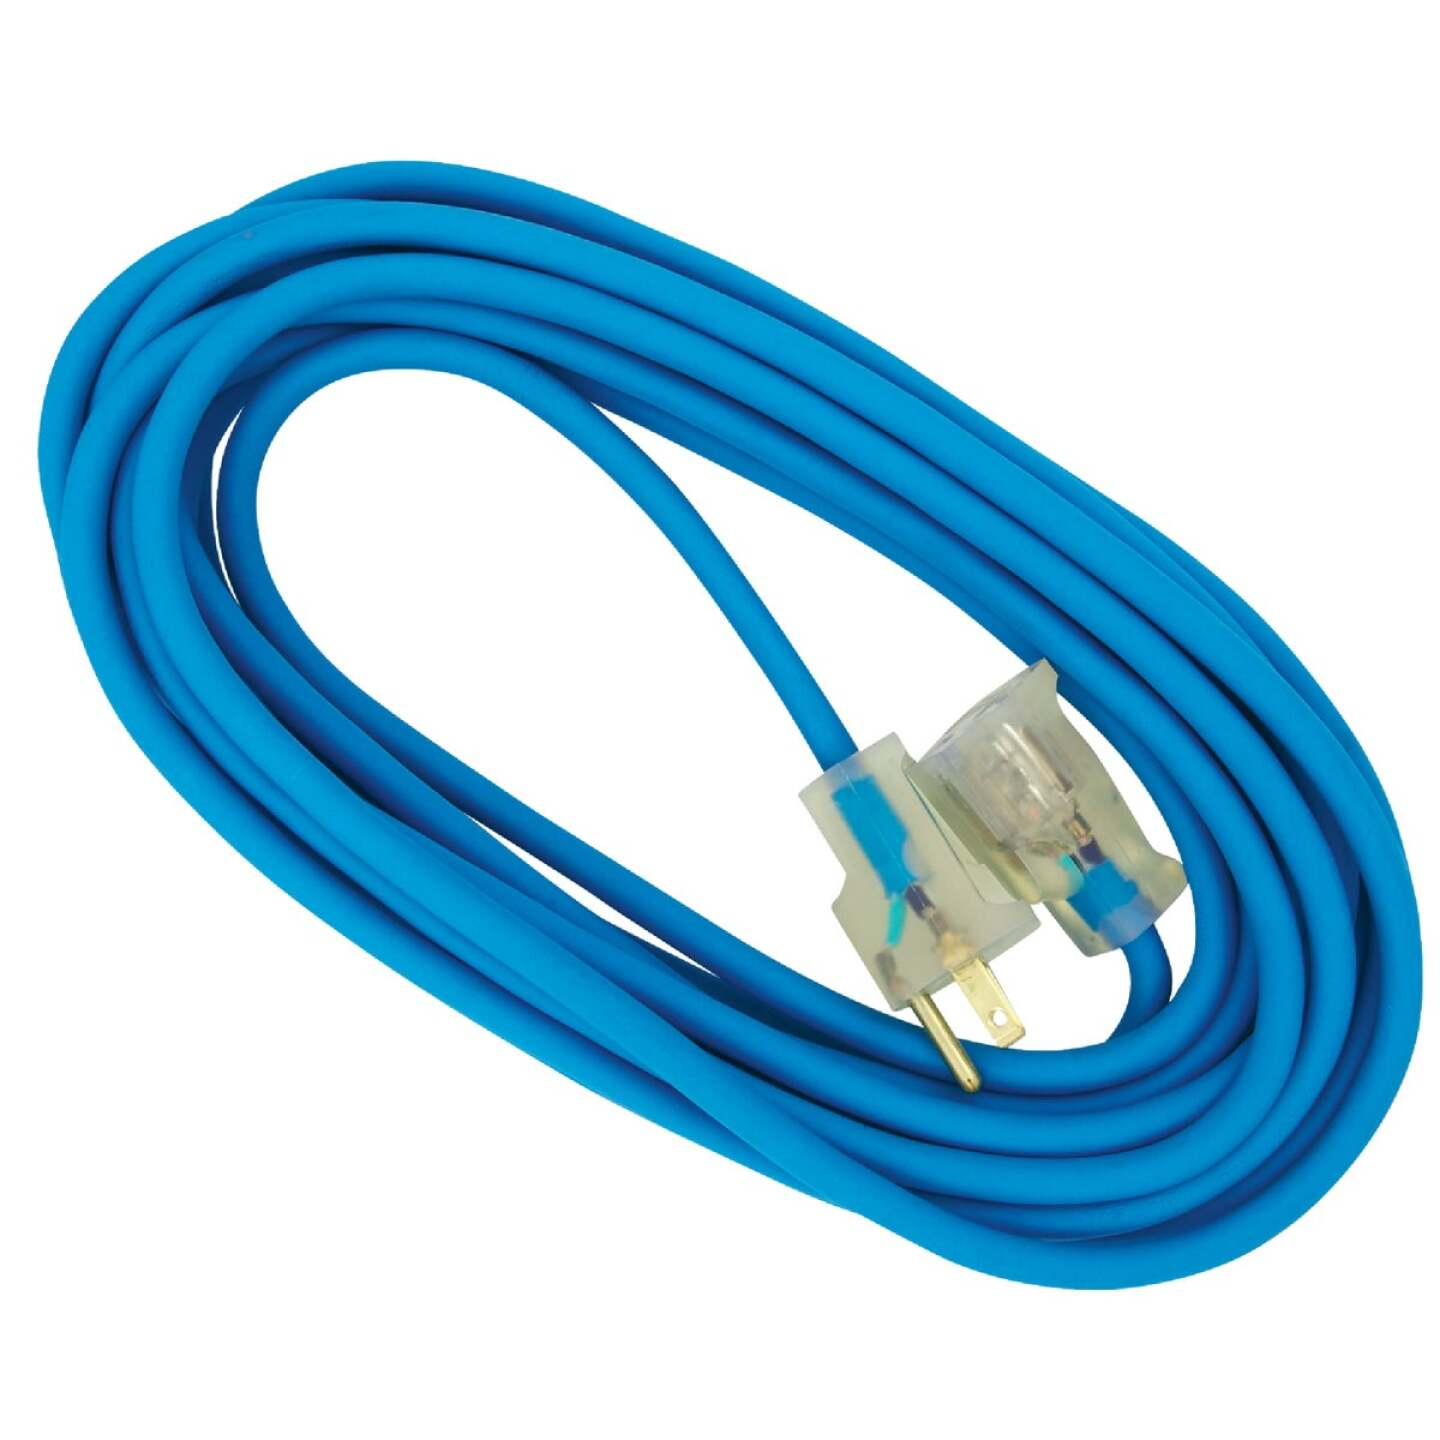 Do it Best 25 Ft. 14/3 Industrial Outdoor Extension Cord Image 2